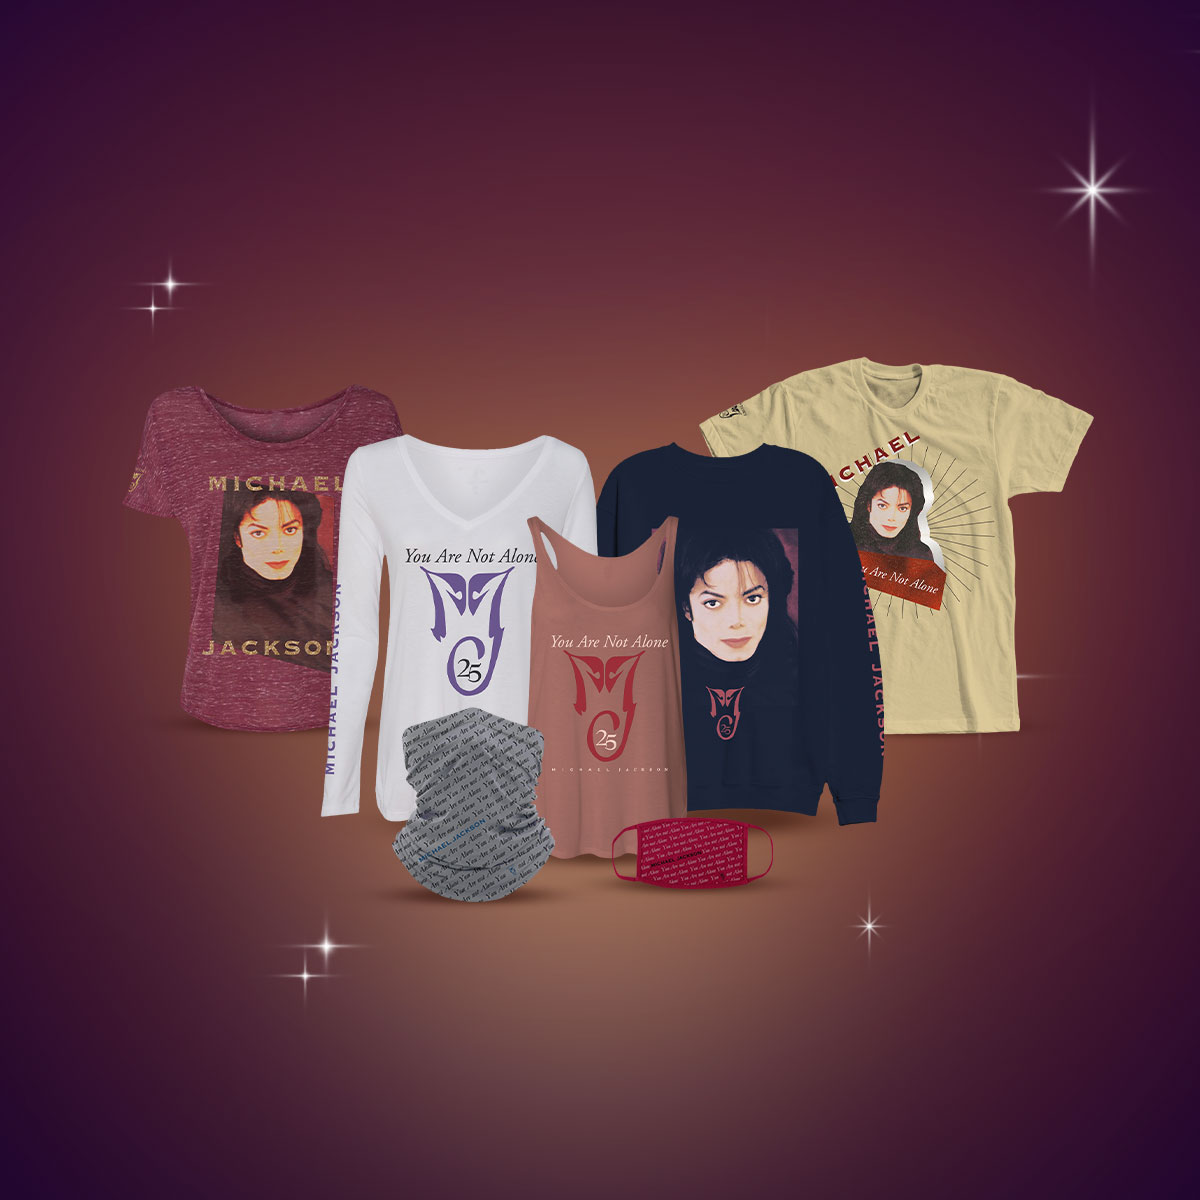 Michael Jackson You Are Not Alone merch collection